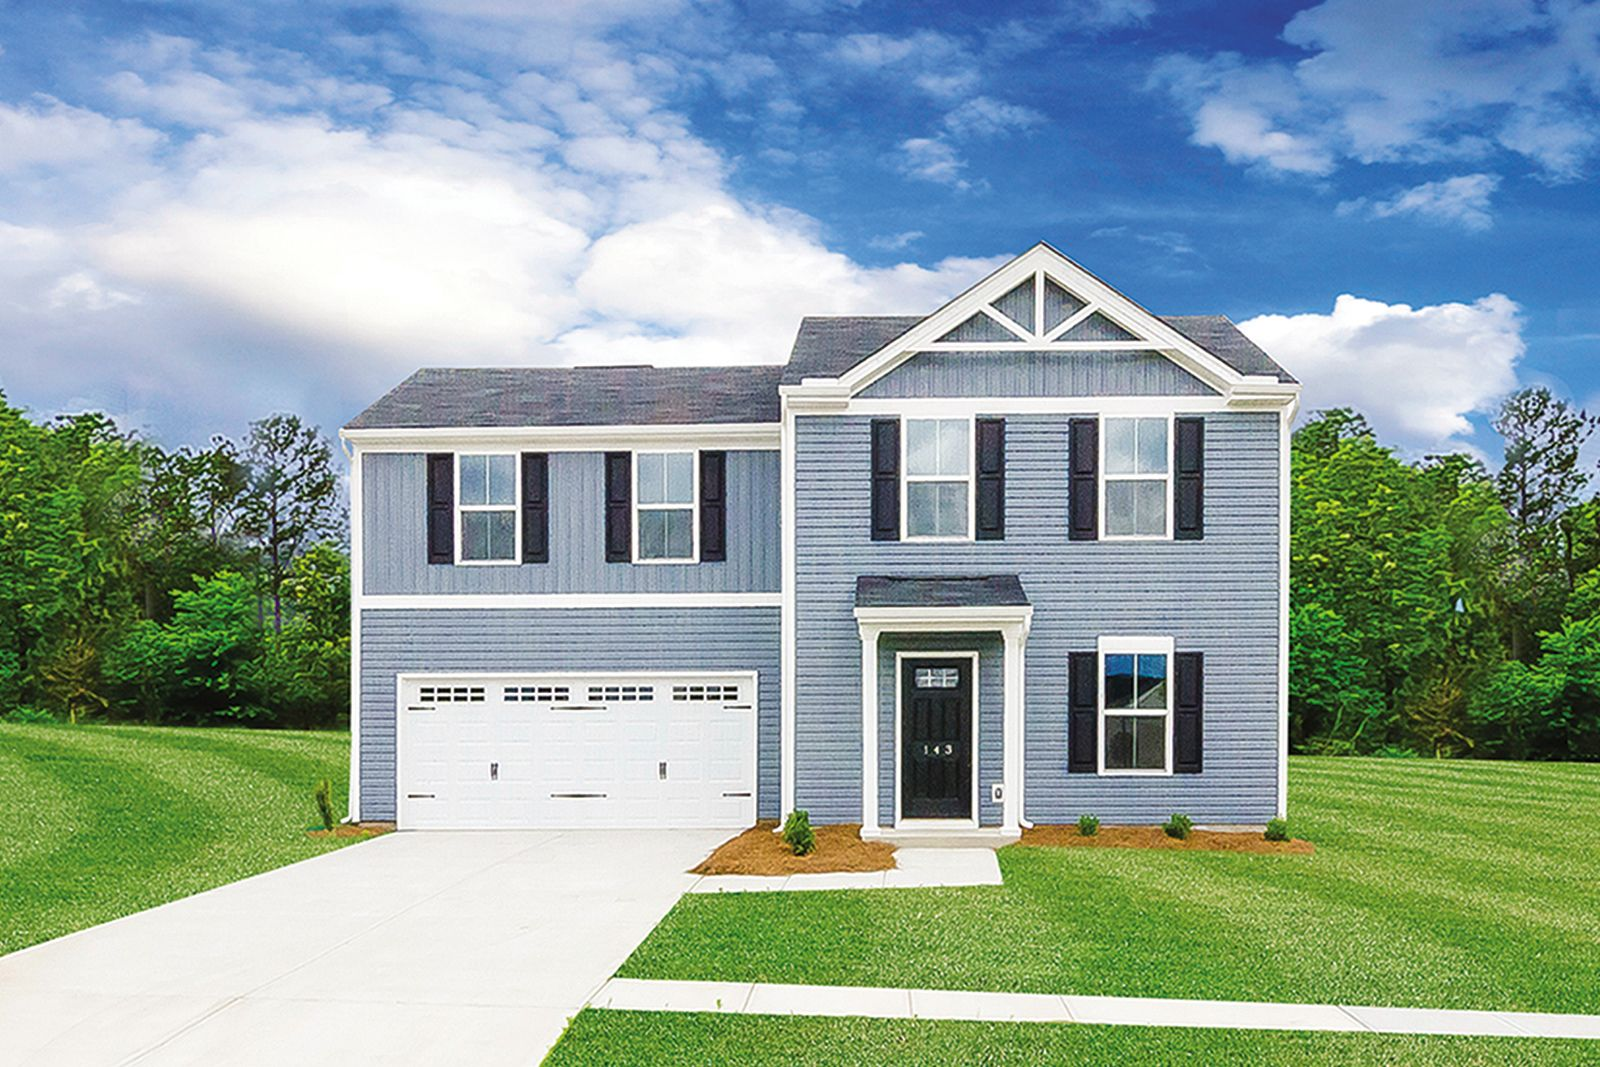 Single Family for Sale at Artists Walk - Plan 1440 2 Galleria Drive Mays Landing, New Jersey 08330 United States